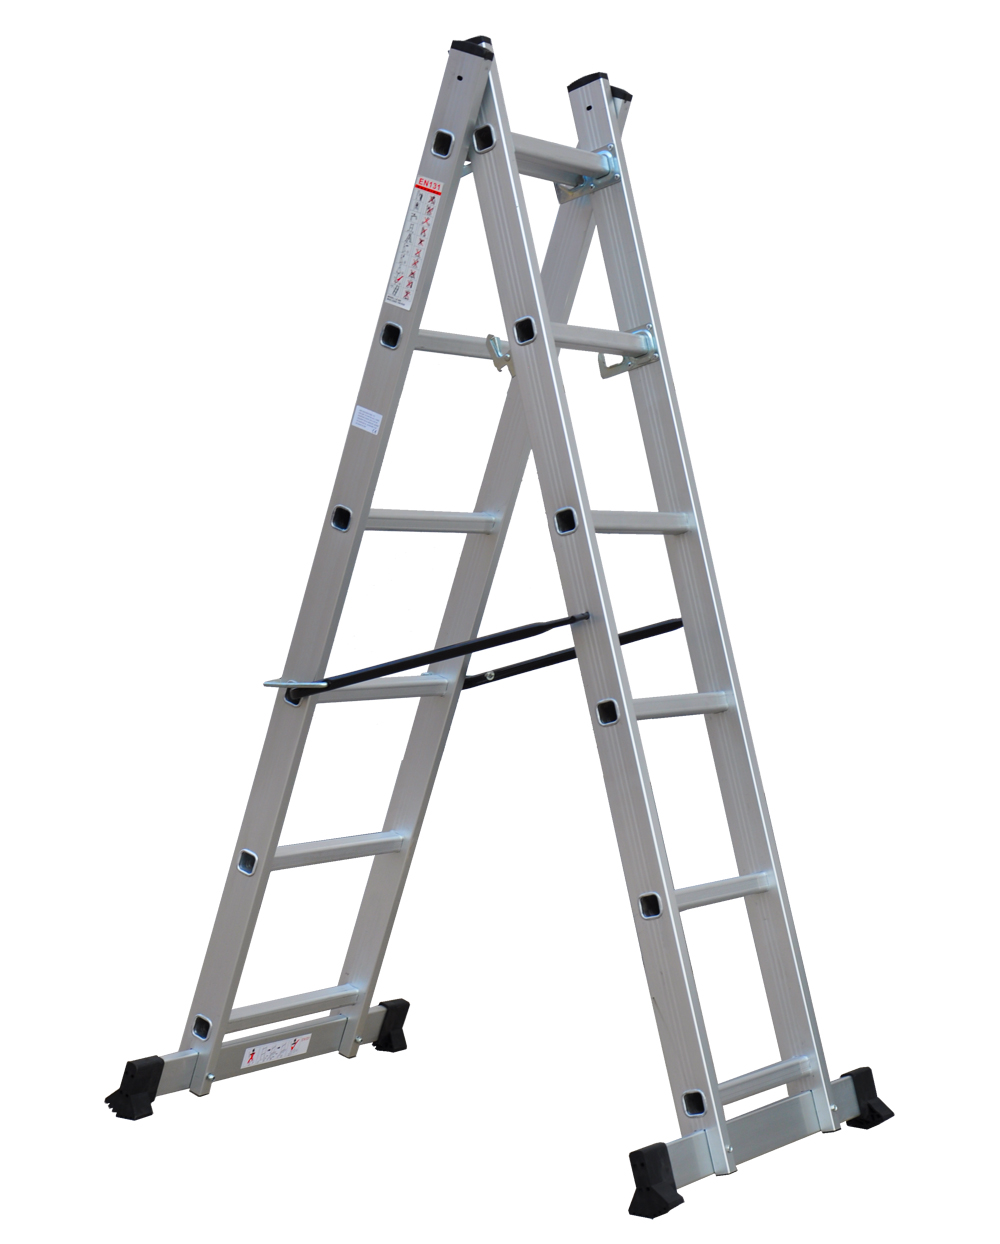 6ft Multi Purpose Step Ladders : New multi purpose diy step ladder aluminium way scaffold